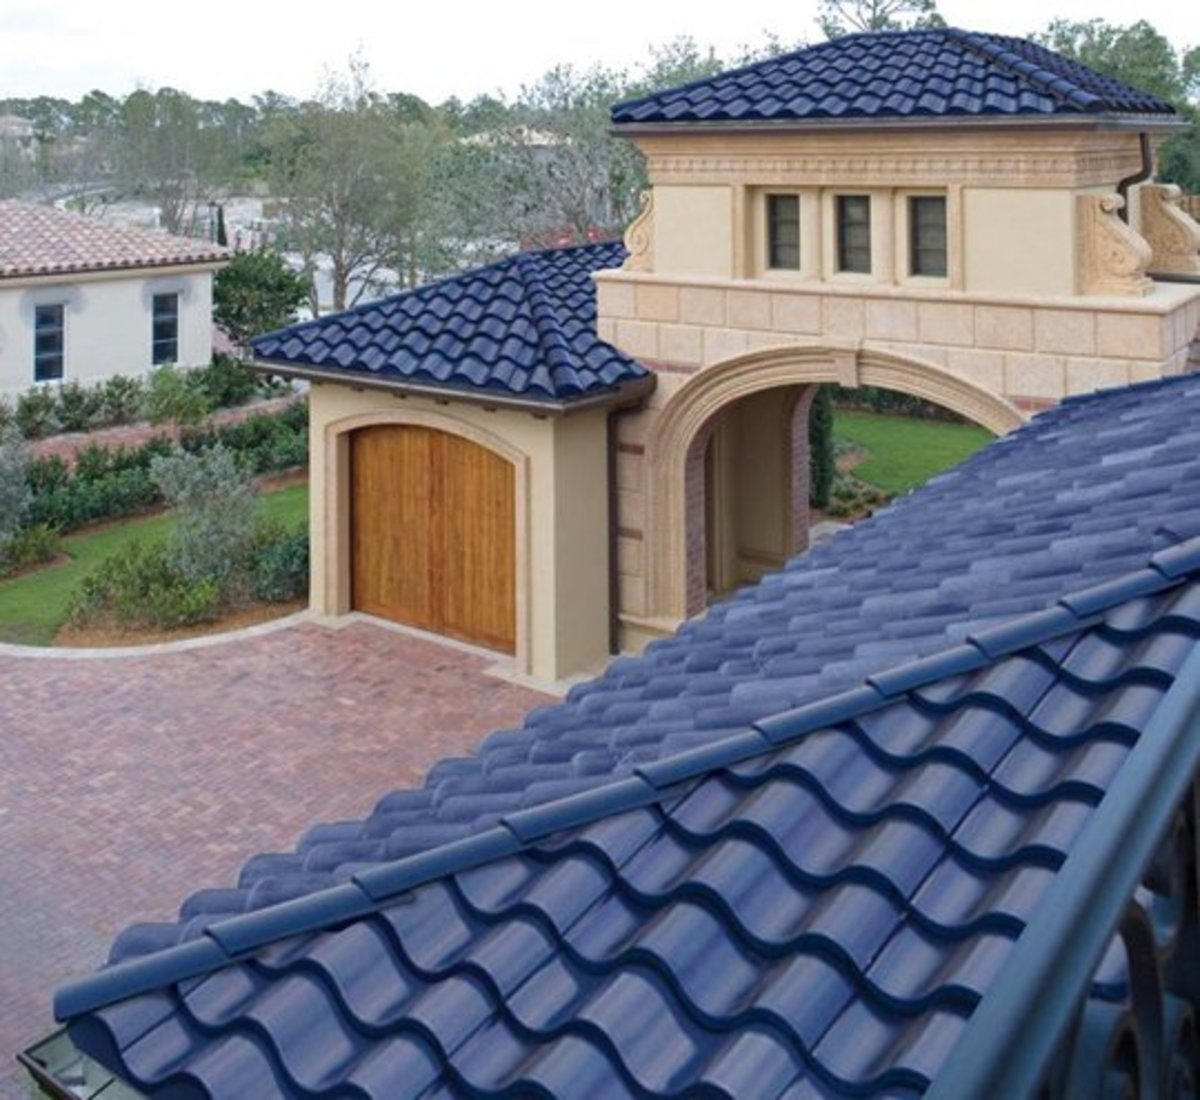 Home Remodeling Improvement - Tile Roofs - Spanish Style Roofs Integrated with Solar in the Installation